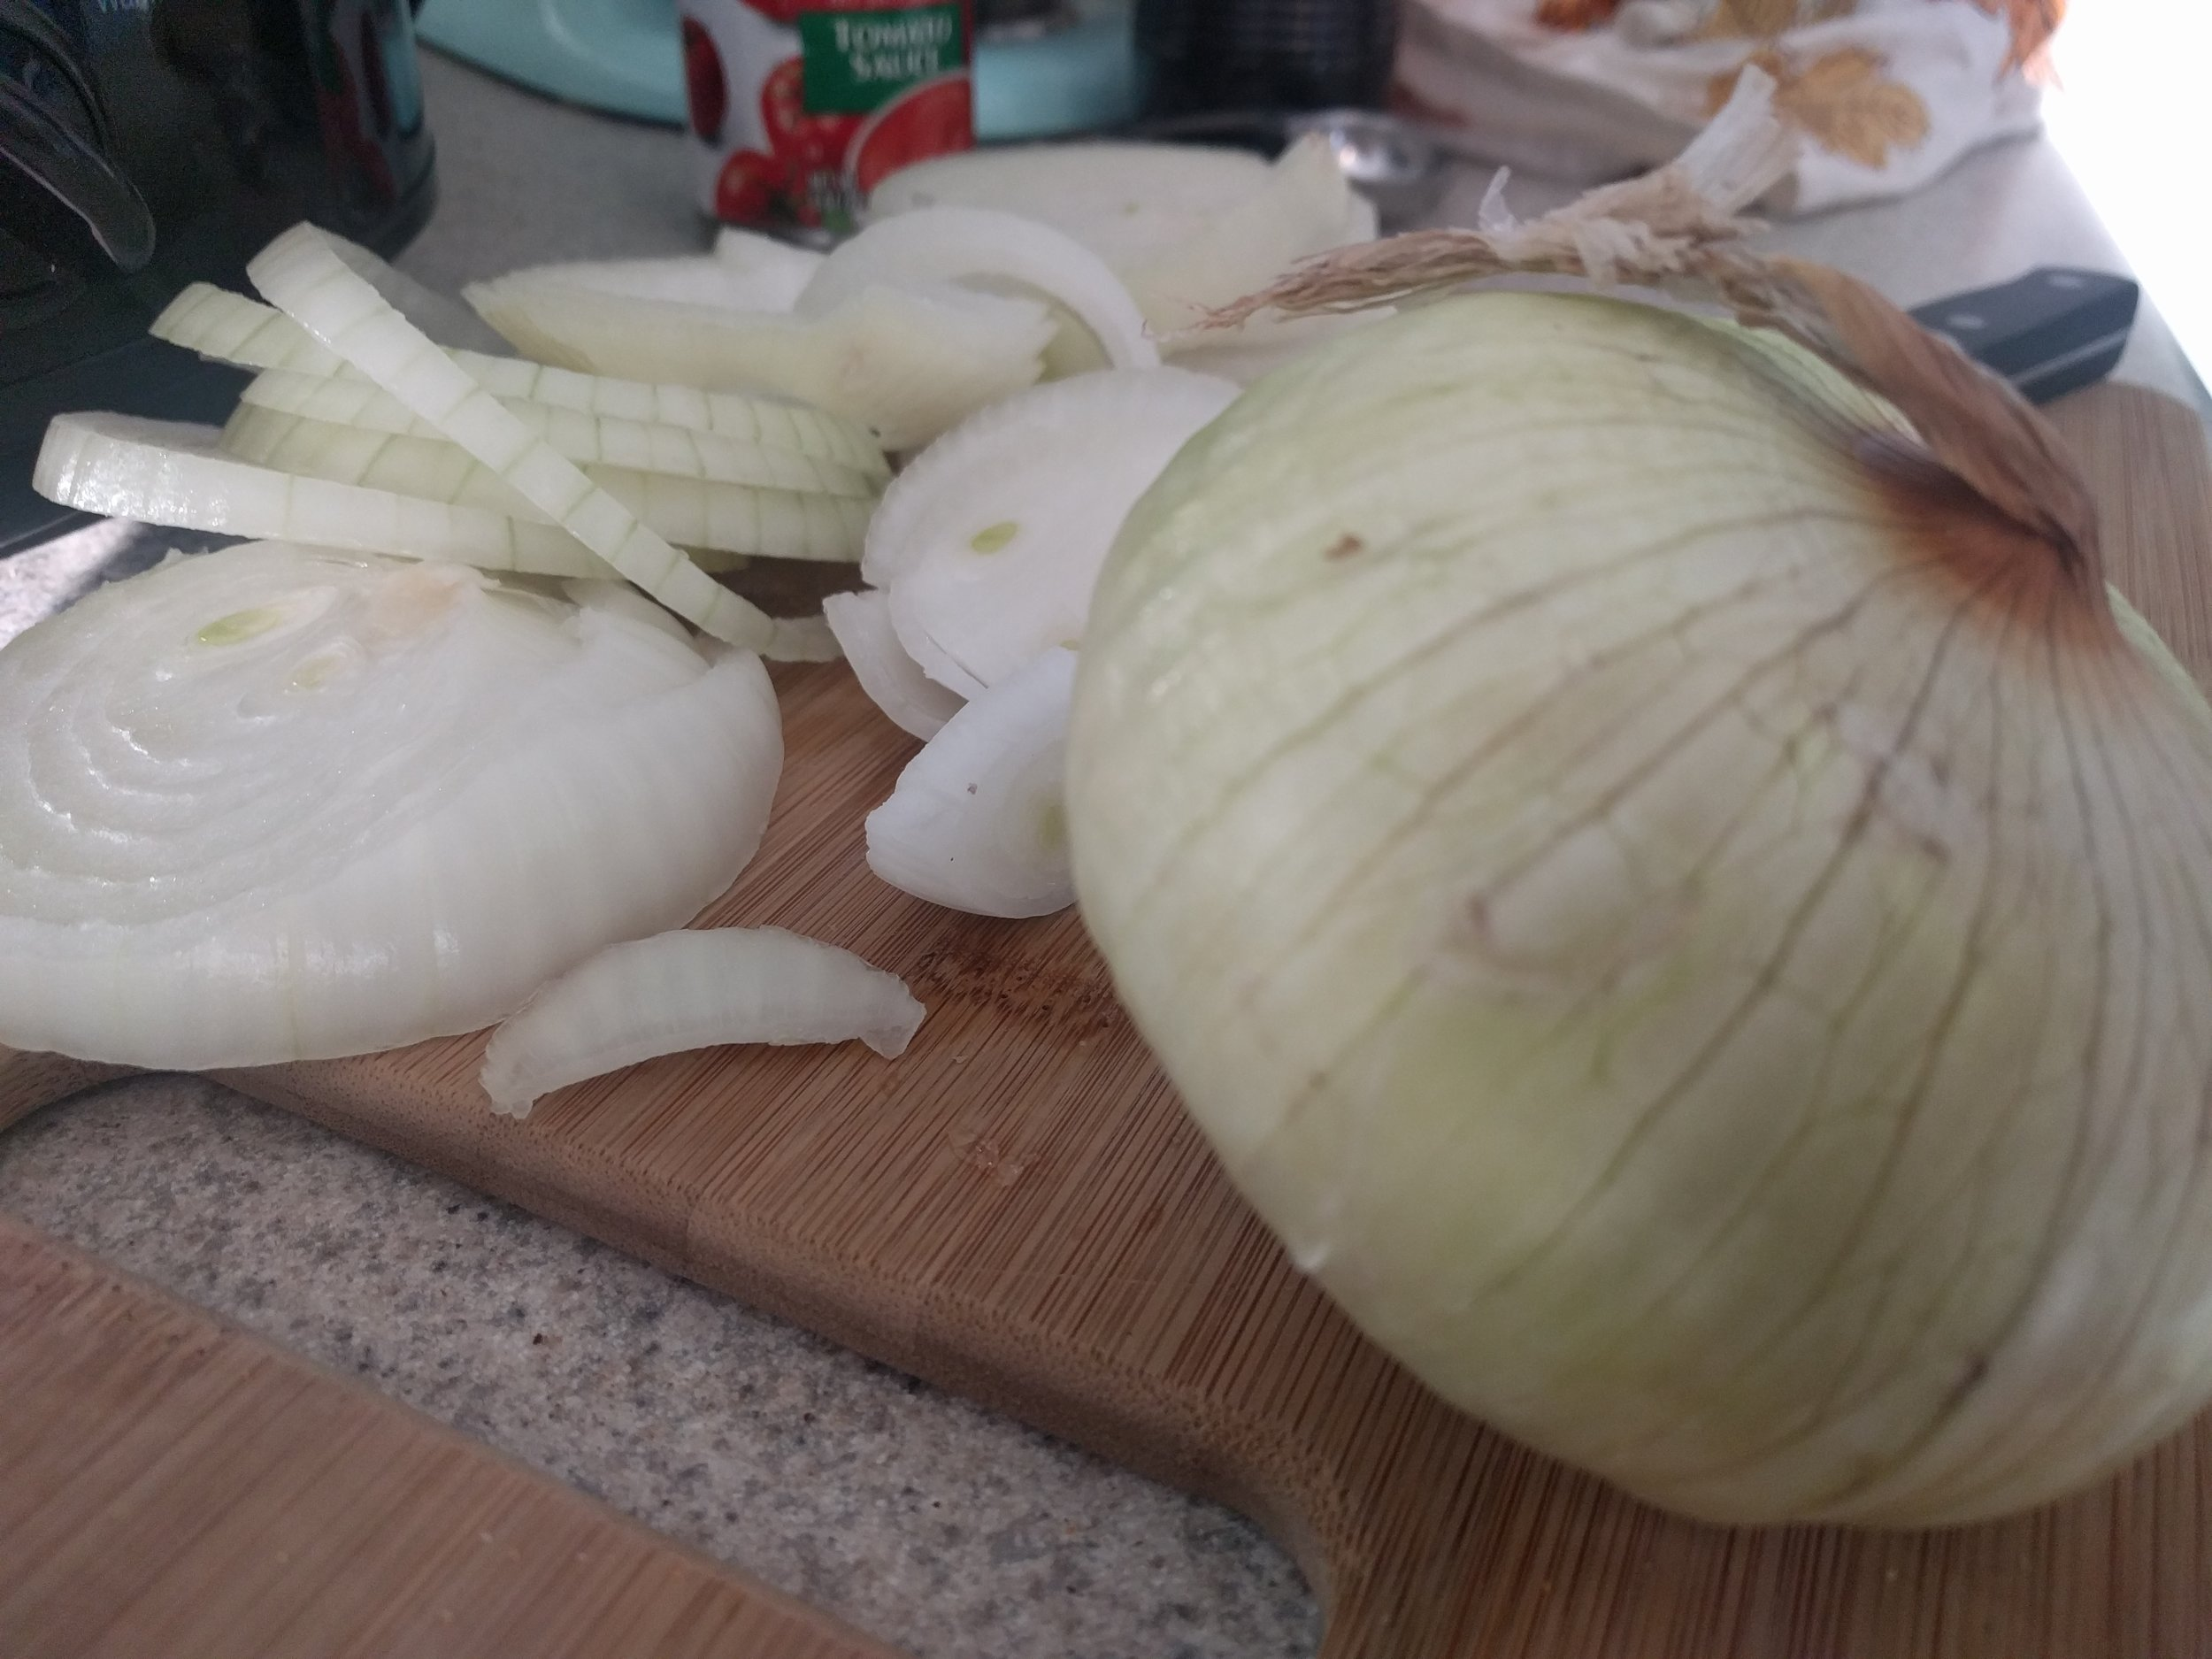 We are HUGE fan of onions...I chopped up FOUR for this meal!